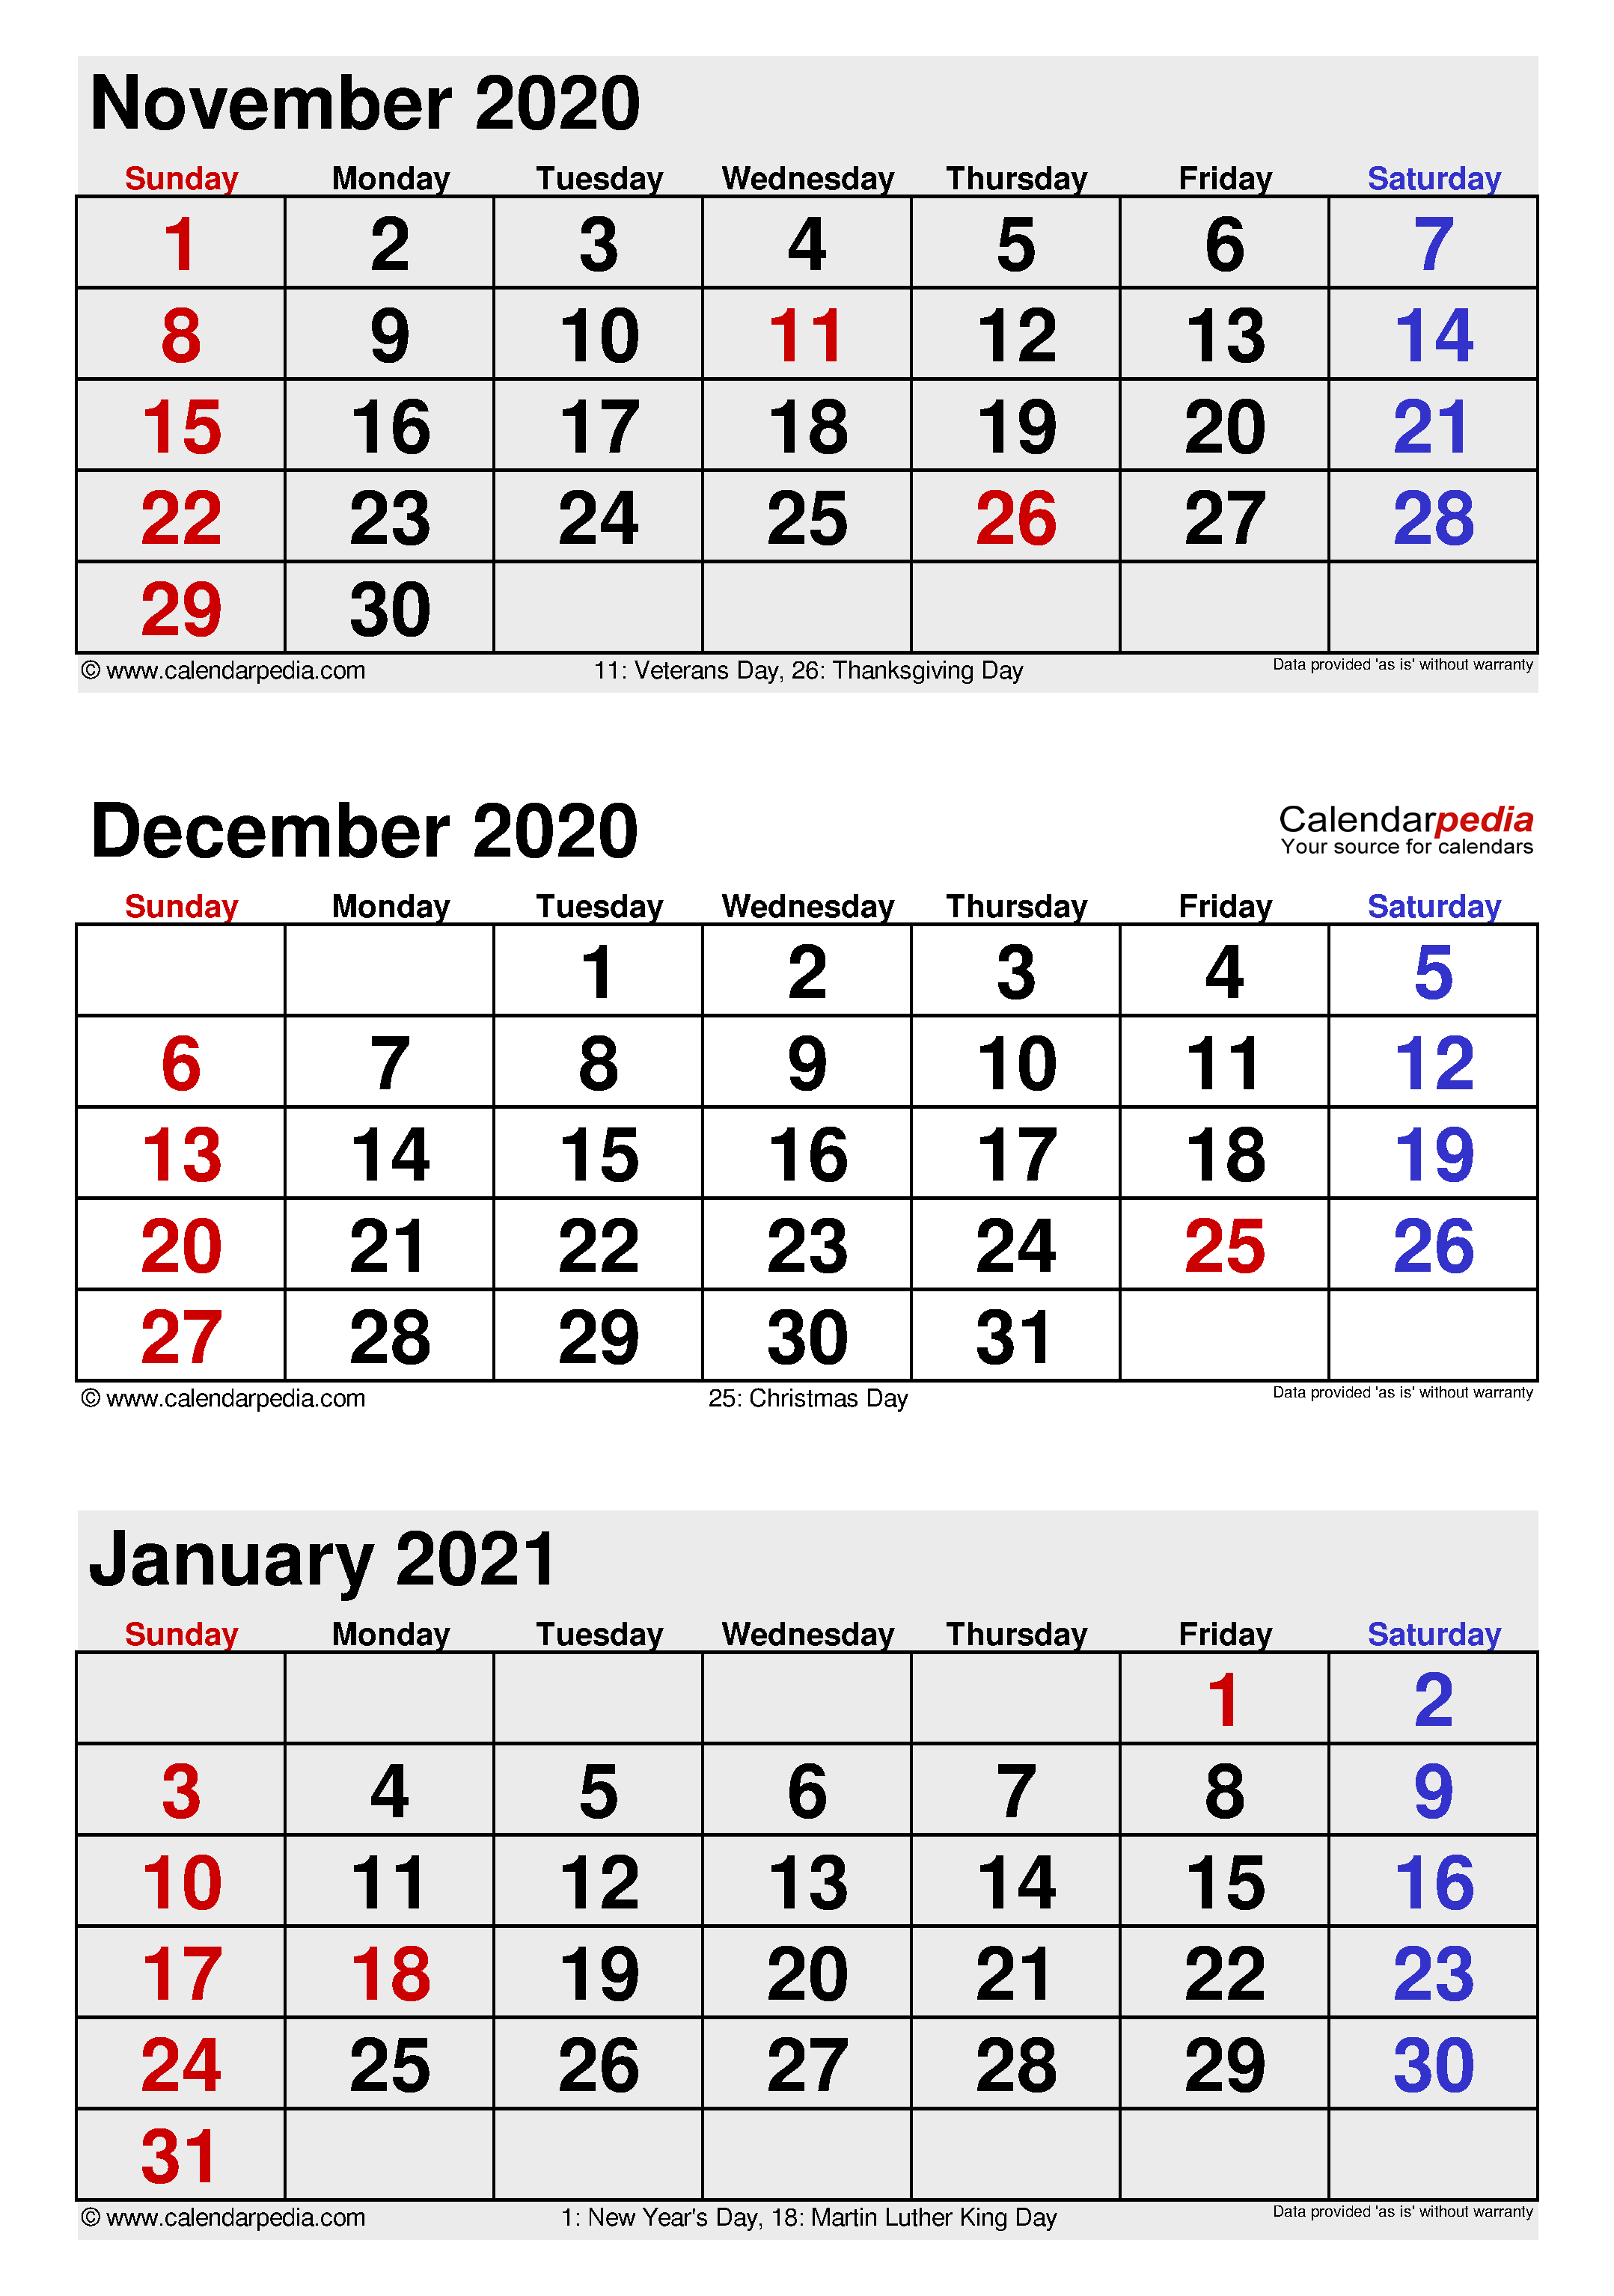 December 2020 Calendar | Templates for Word, Excel and PDF